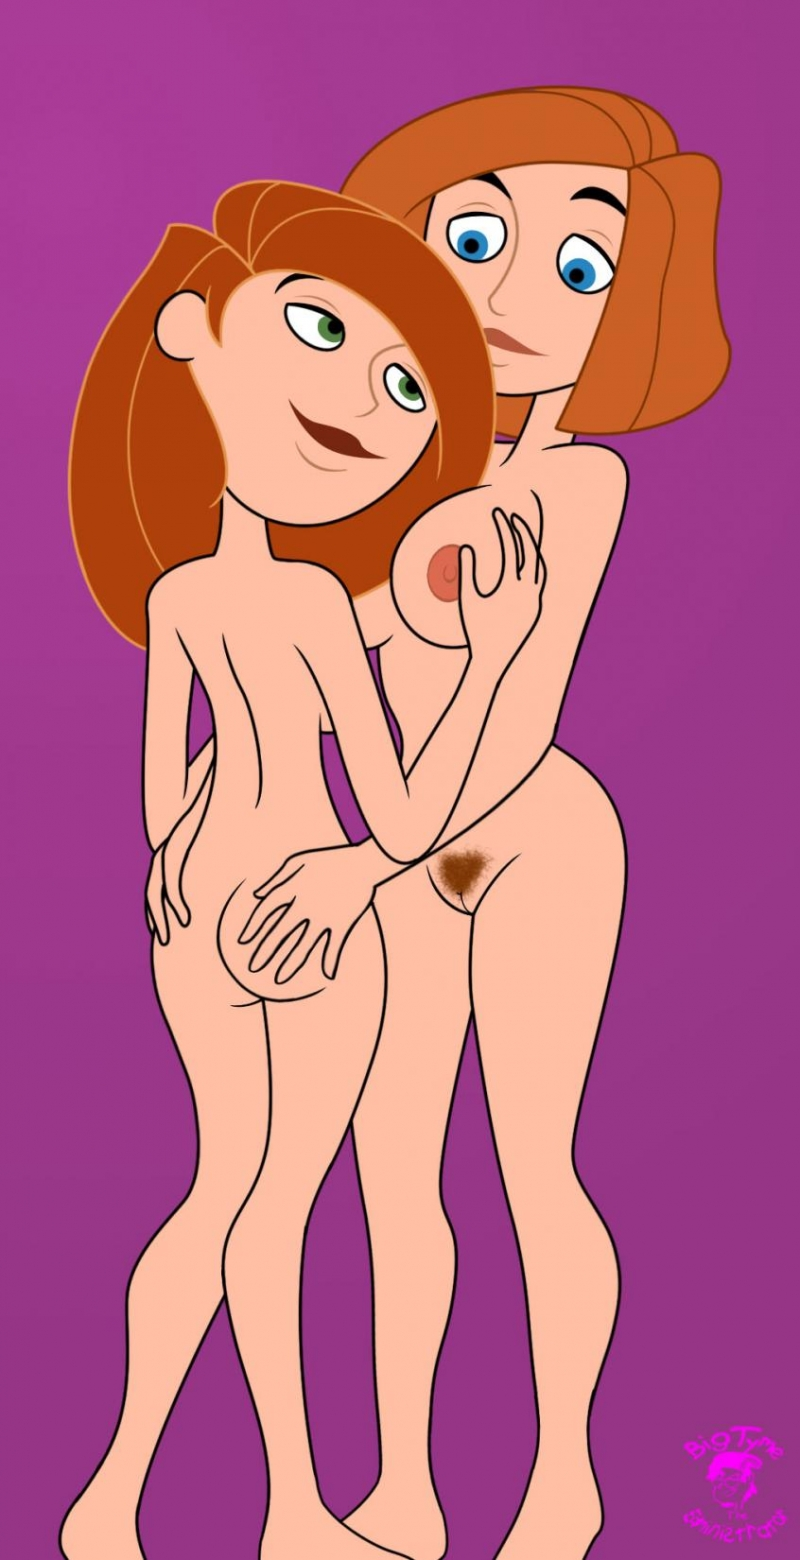 Ann Possible and Kim Possible are going to spend some time together... and they already has taken off all of their clothes!